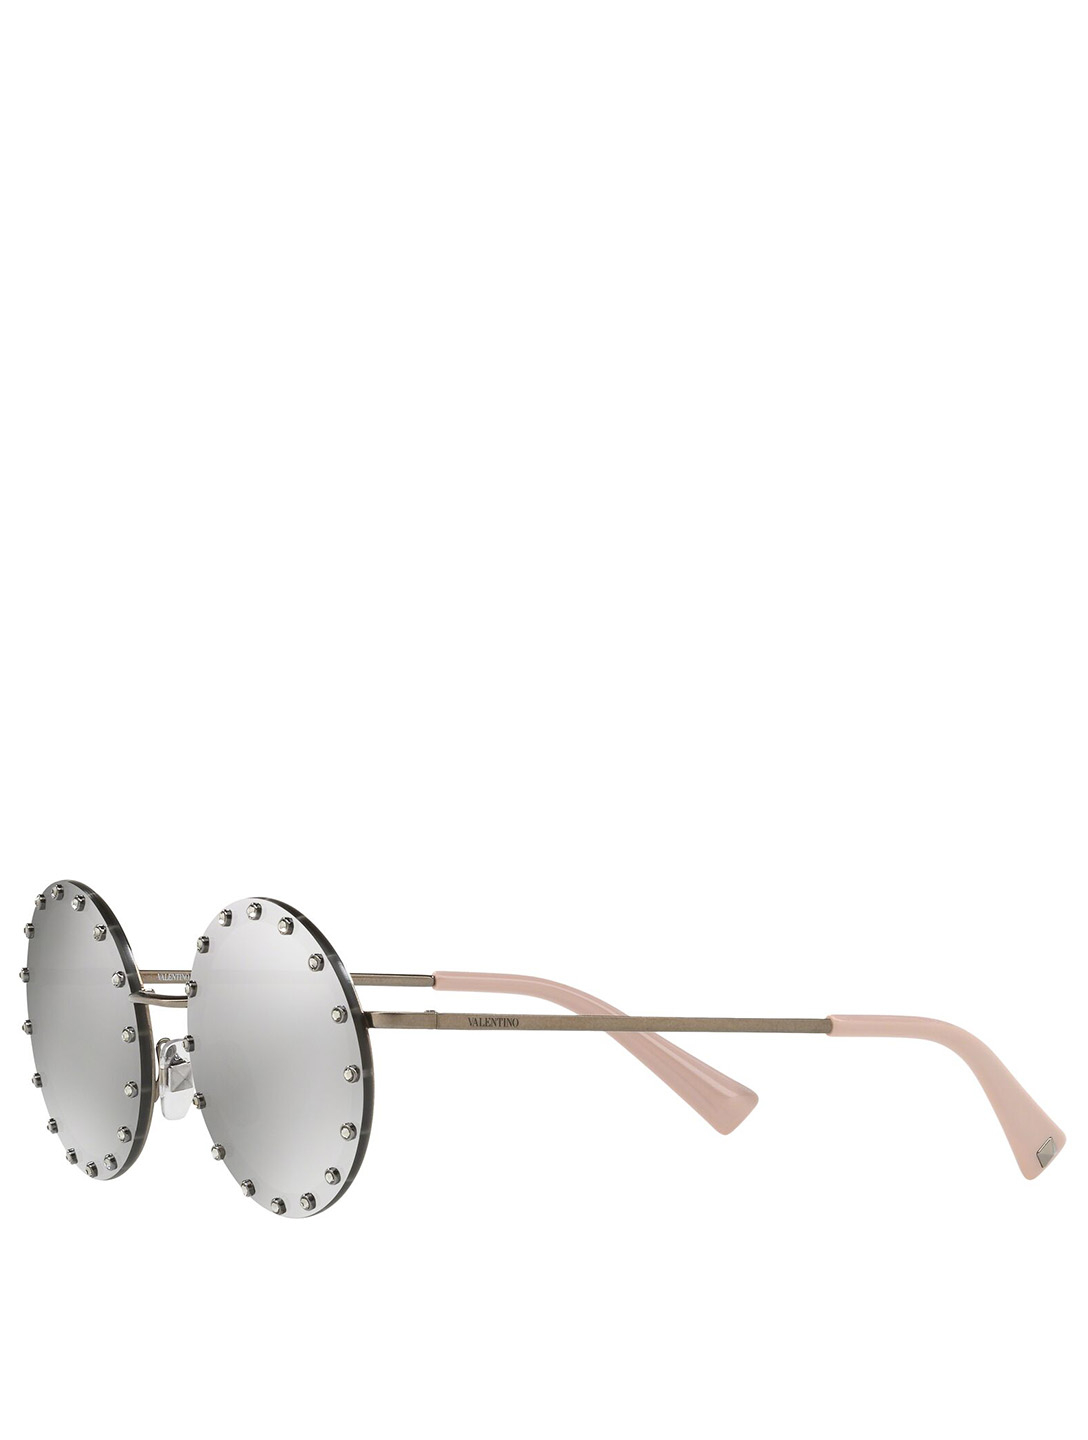 VALENTINO Round Sunglasses With Crystals Women's Silver